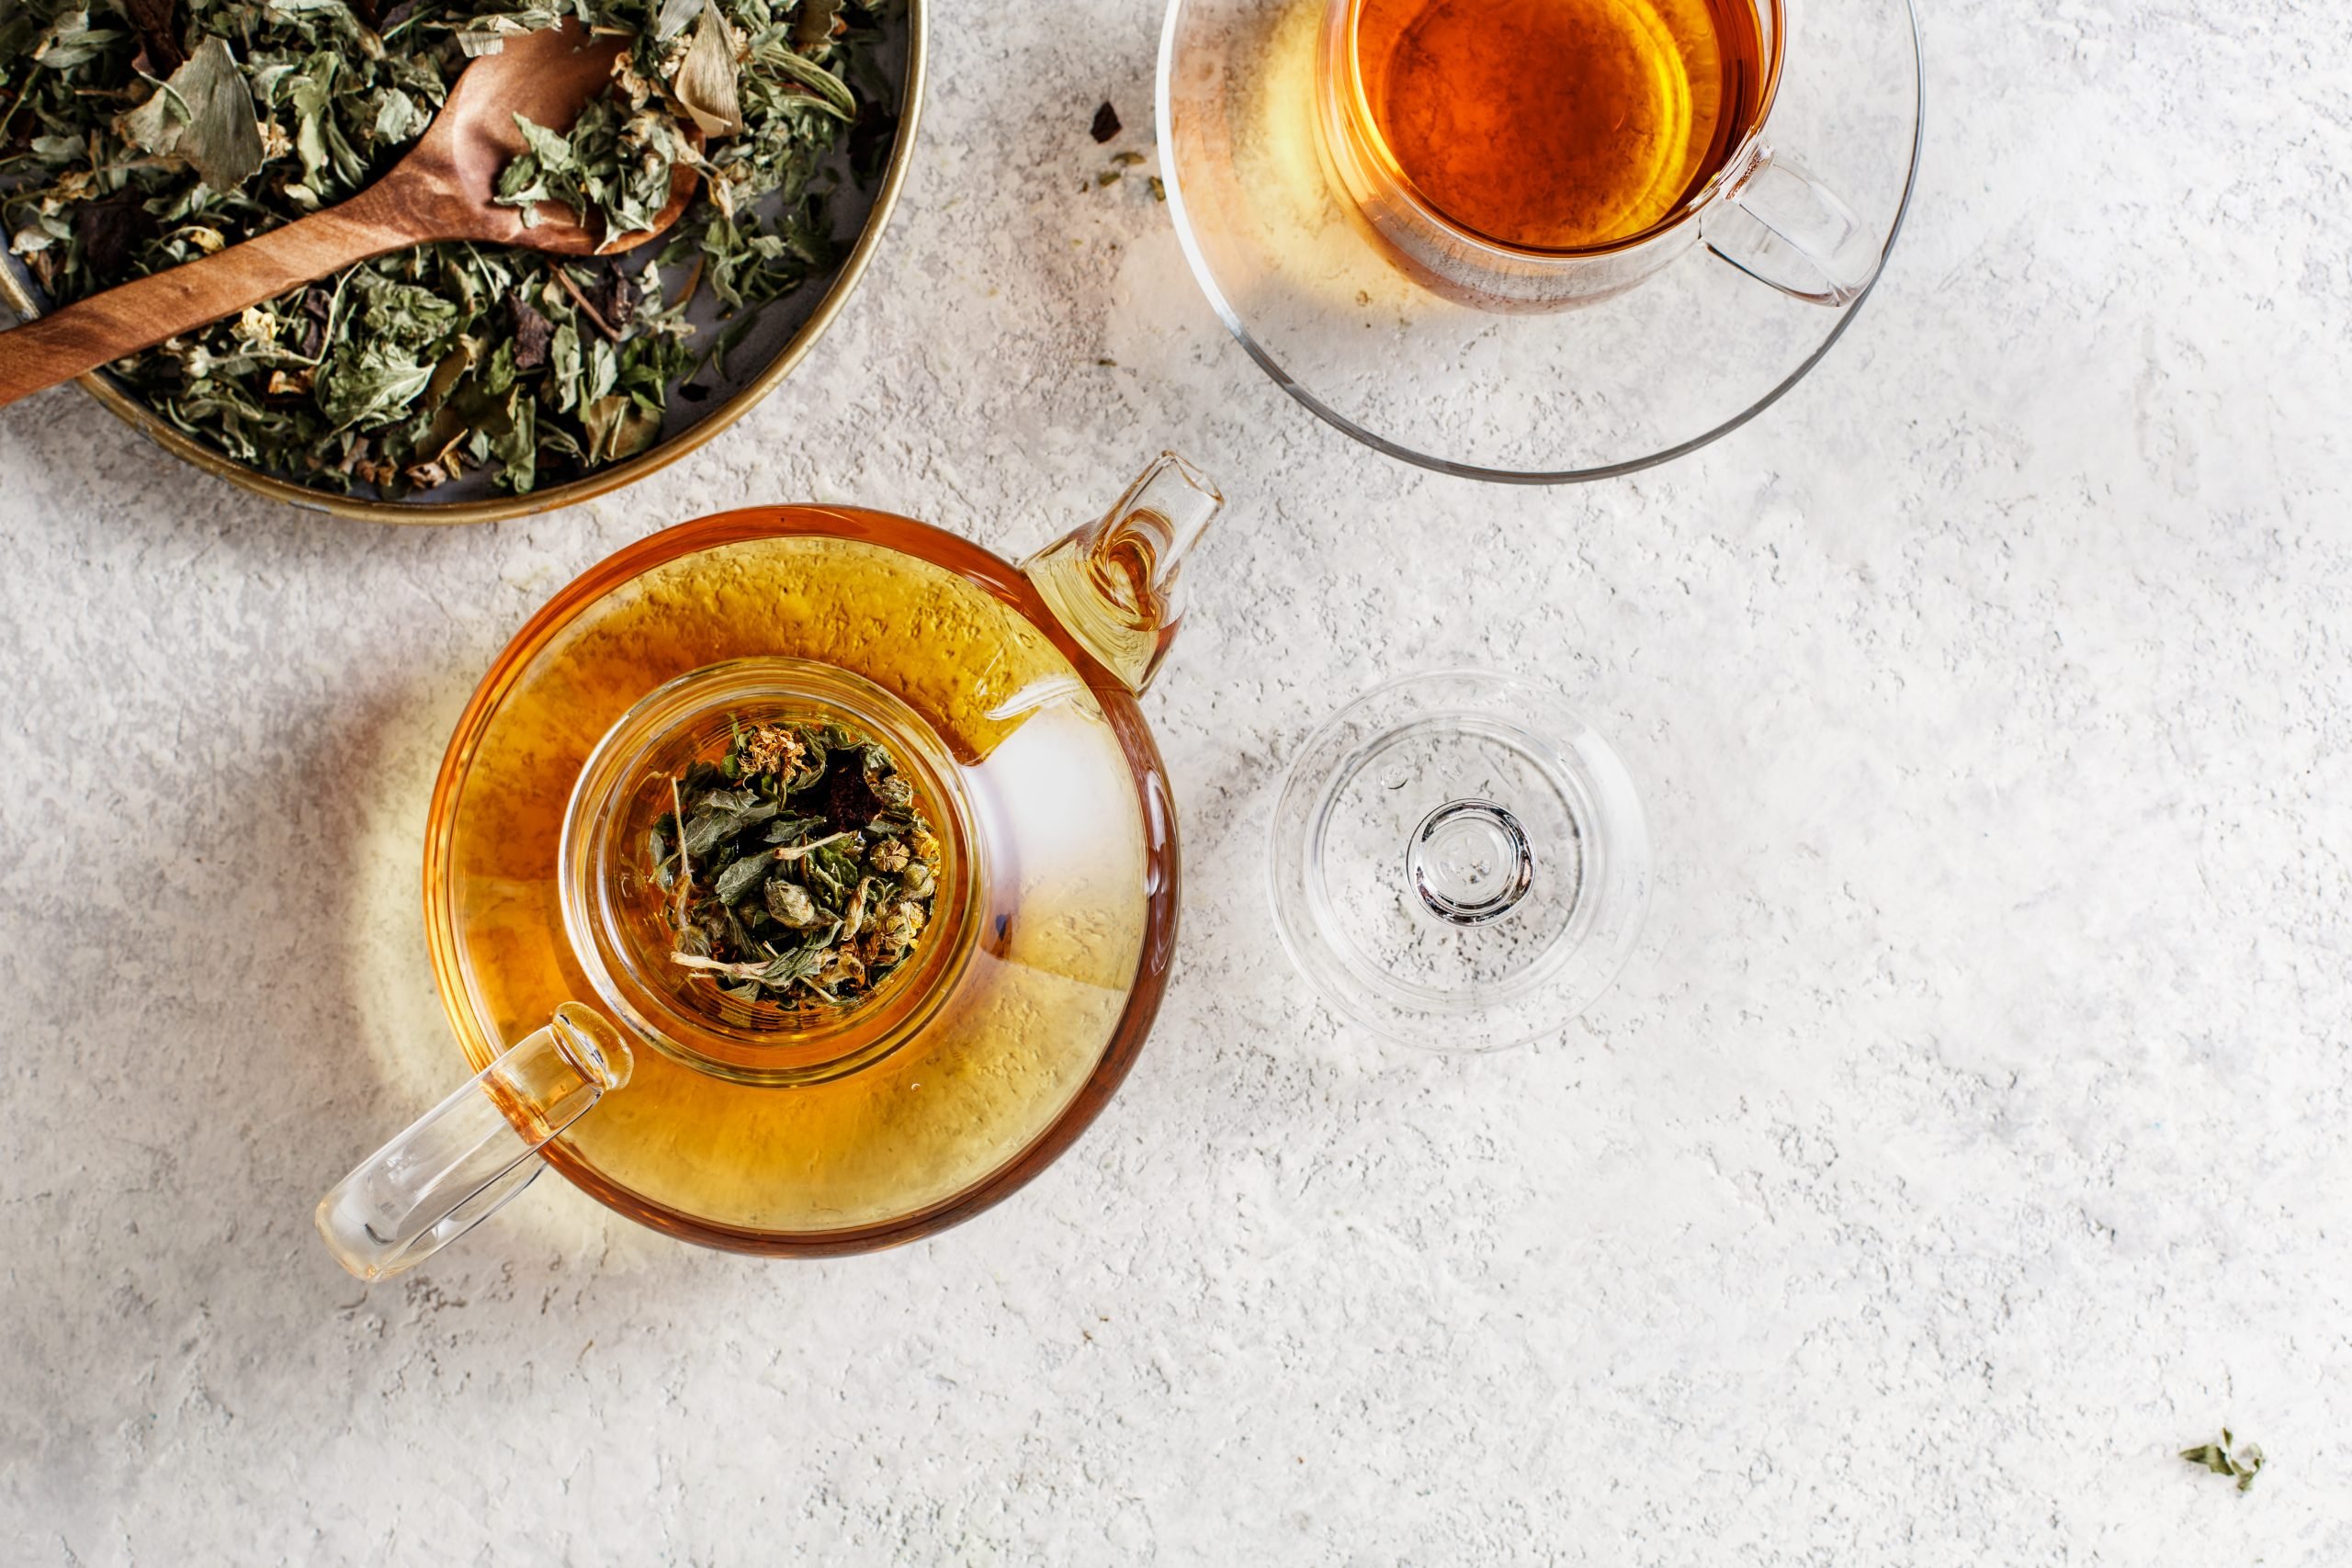 Glass teapot and a teacup with herbal tea.